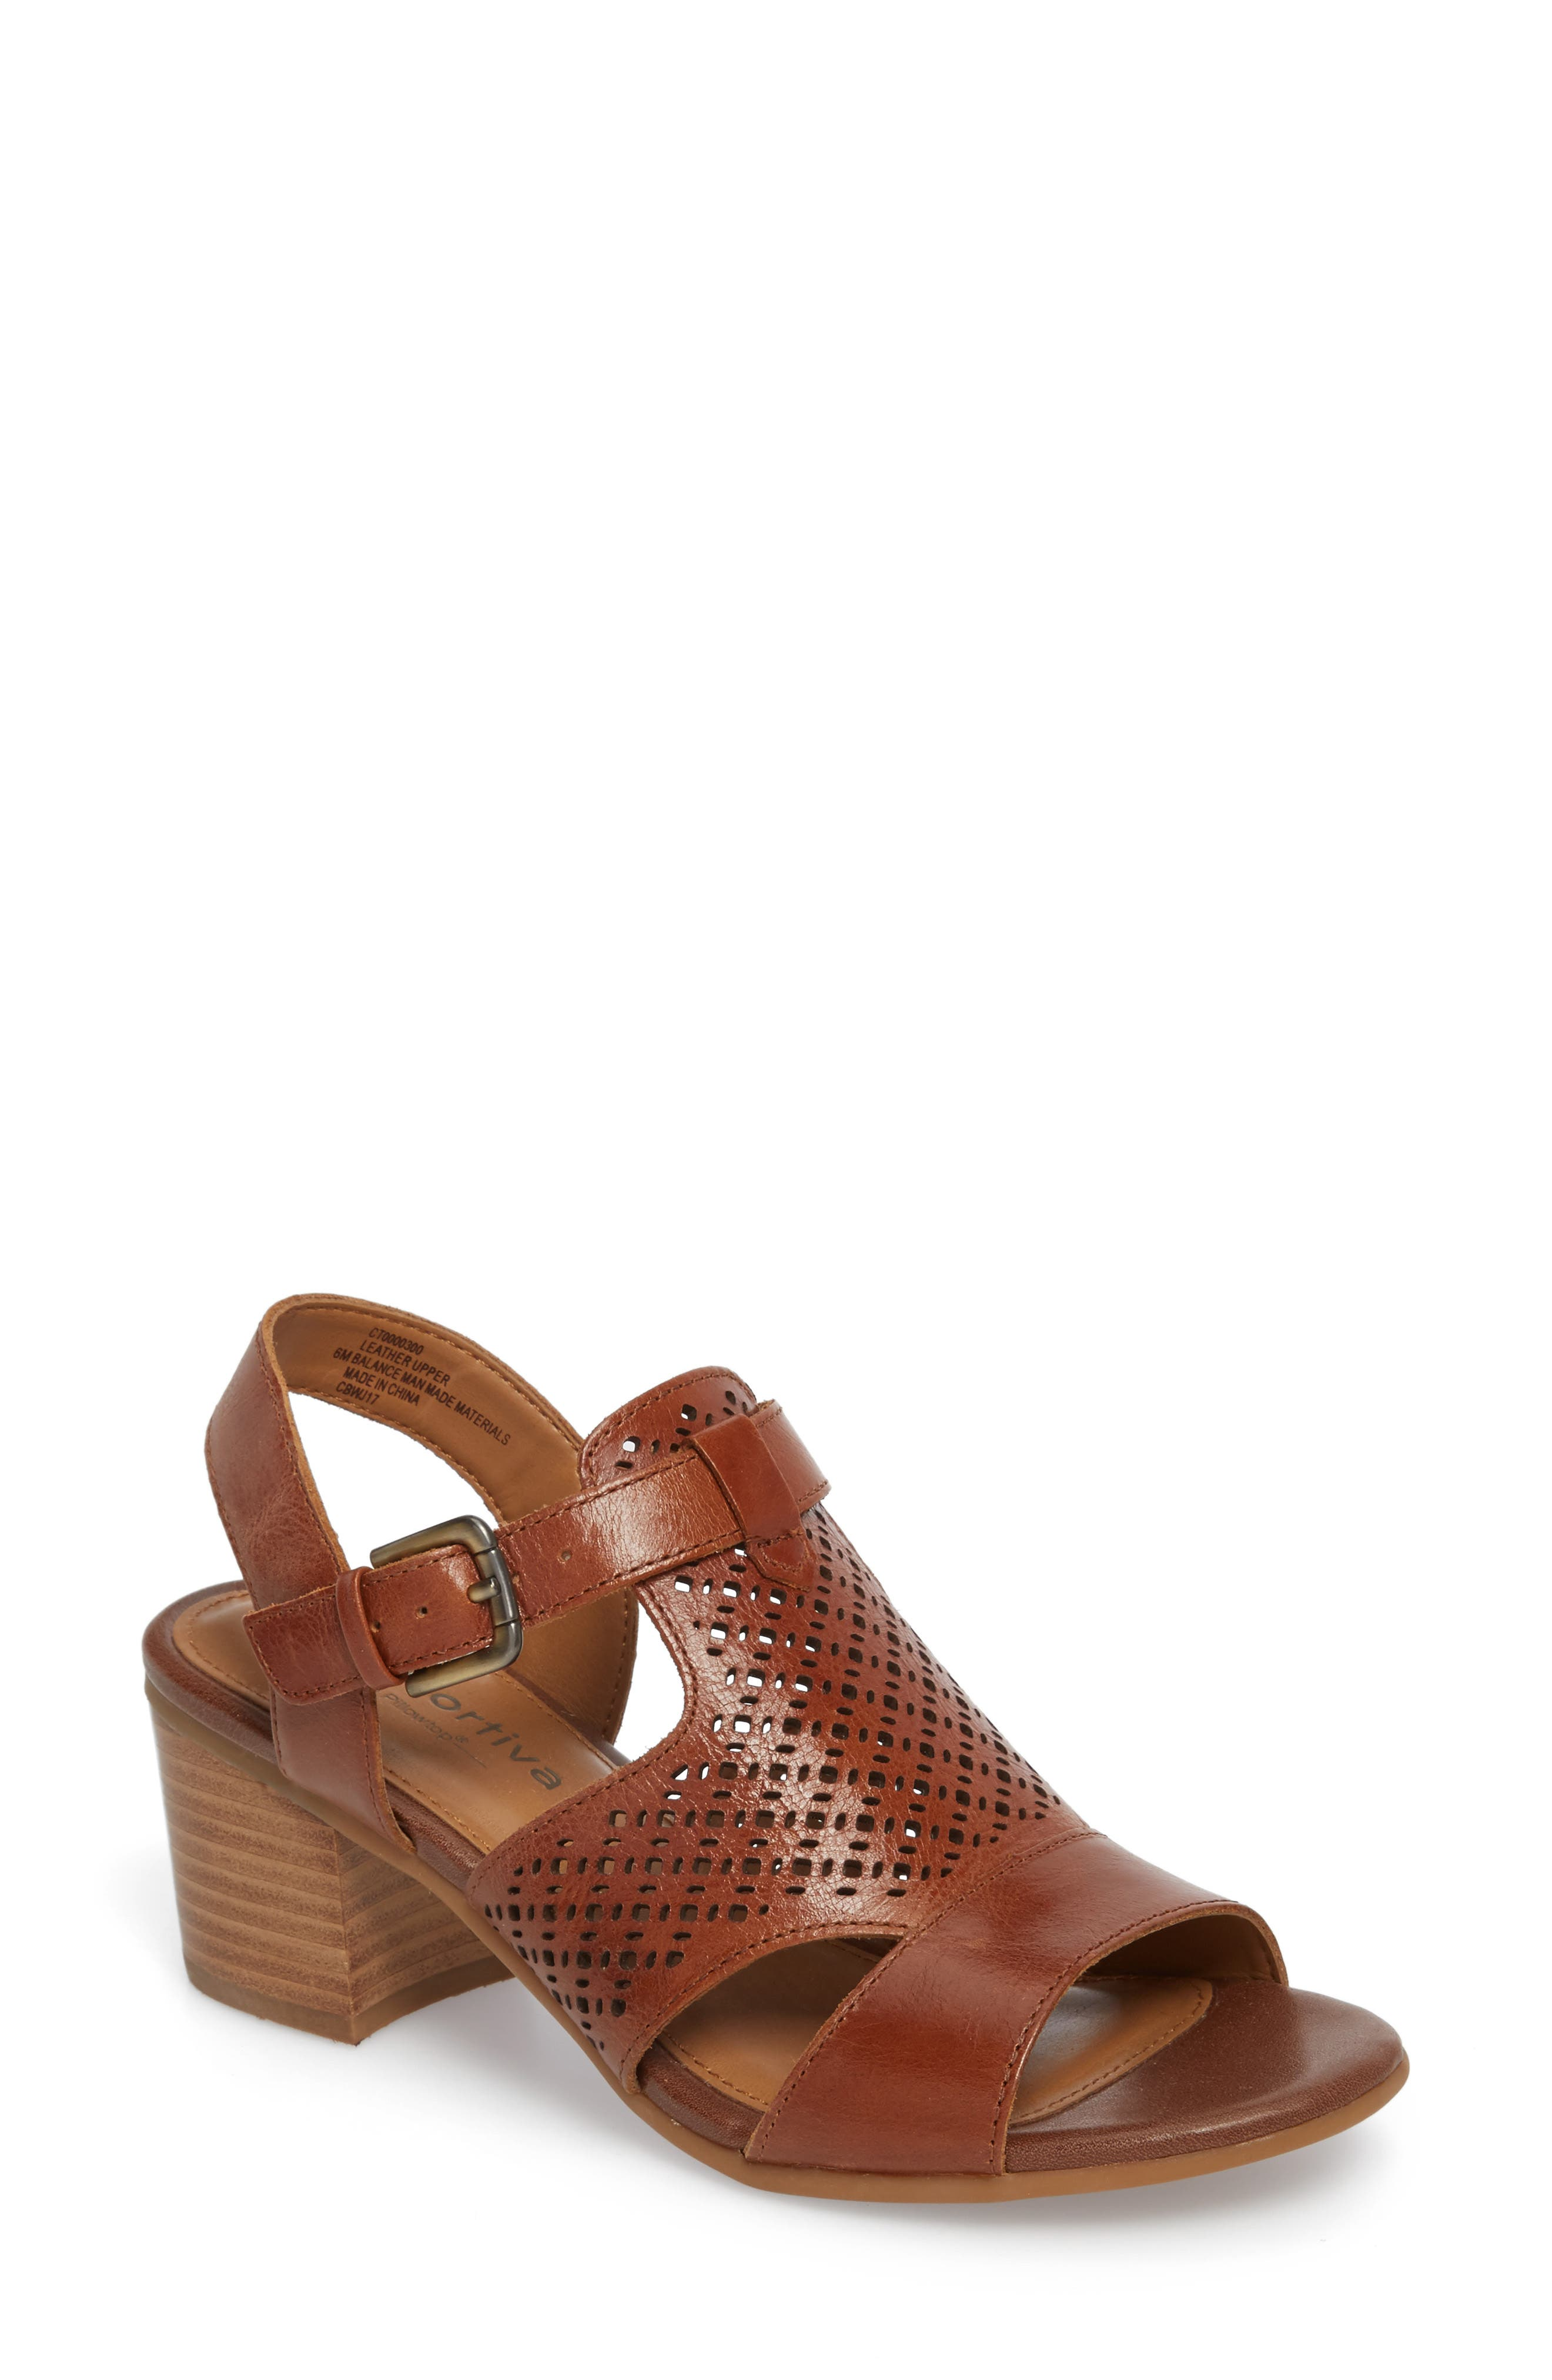 Amber Perforated Block Heel Sandal,                         Main,                         color, Luggage Leather